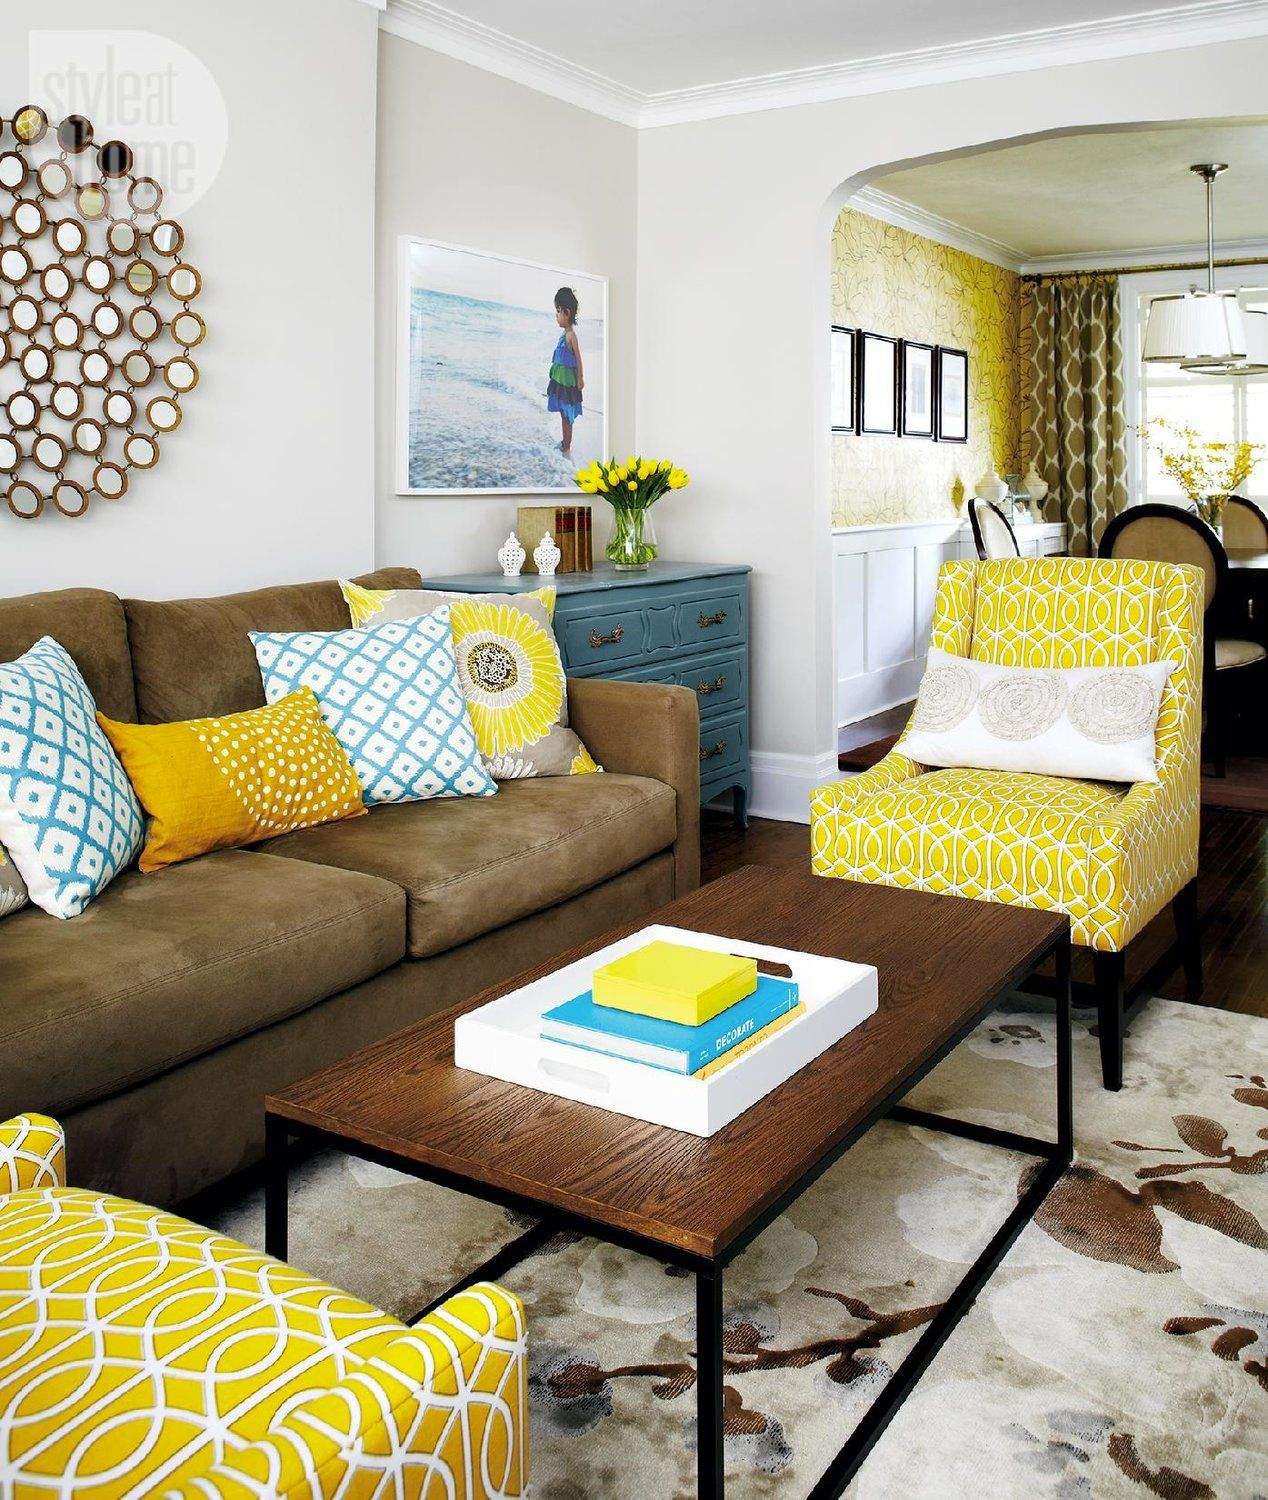 Brown And Yellow Bedroom Ideas: 11 Living Room Design Dilemmas And Solutions In 2019